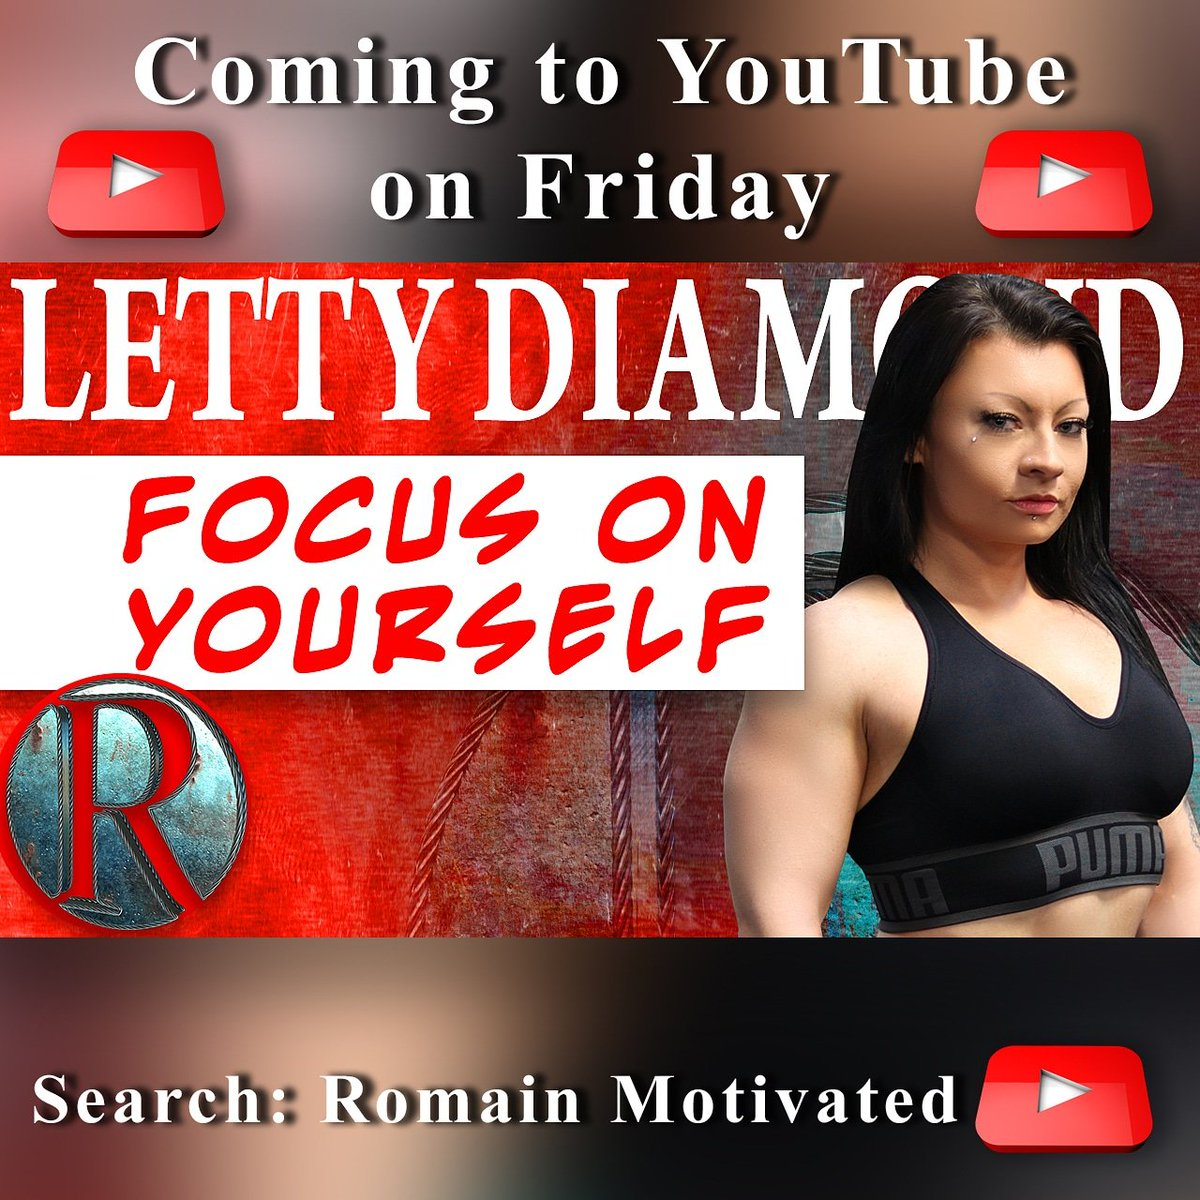 New video coming on Friday https://youtu.be/VYt43OW0TtA #bodybuildingmotivation #gymlife #workout #fitnessmodel #gym #fitfam #trainhard #fit #fitness #gymgirls #personaltrainer #girlswholift #muscle #bigmuscles #gains #weighttraining #bodybuildinggirls #bodybuildinglifestylepic.twitter.com/ZmIGmWhx35